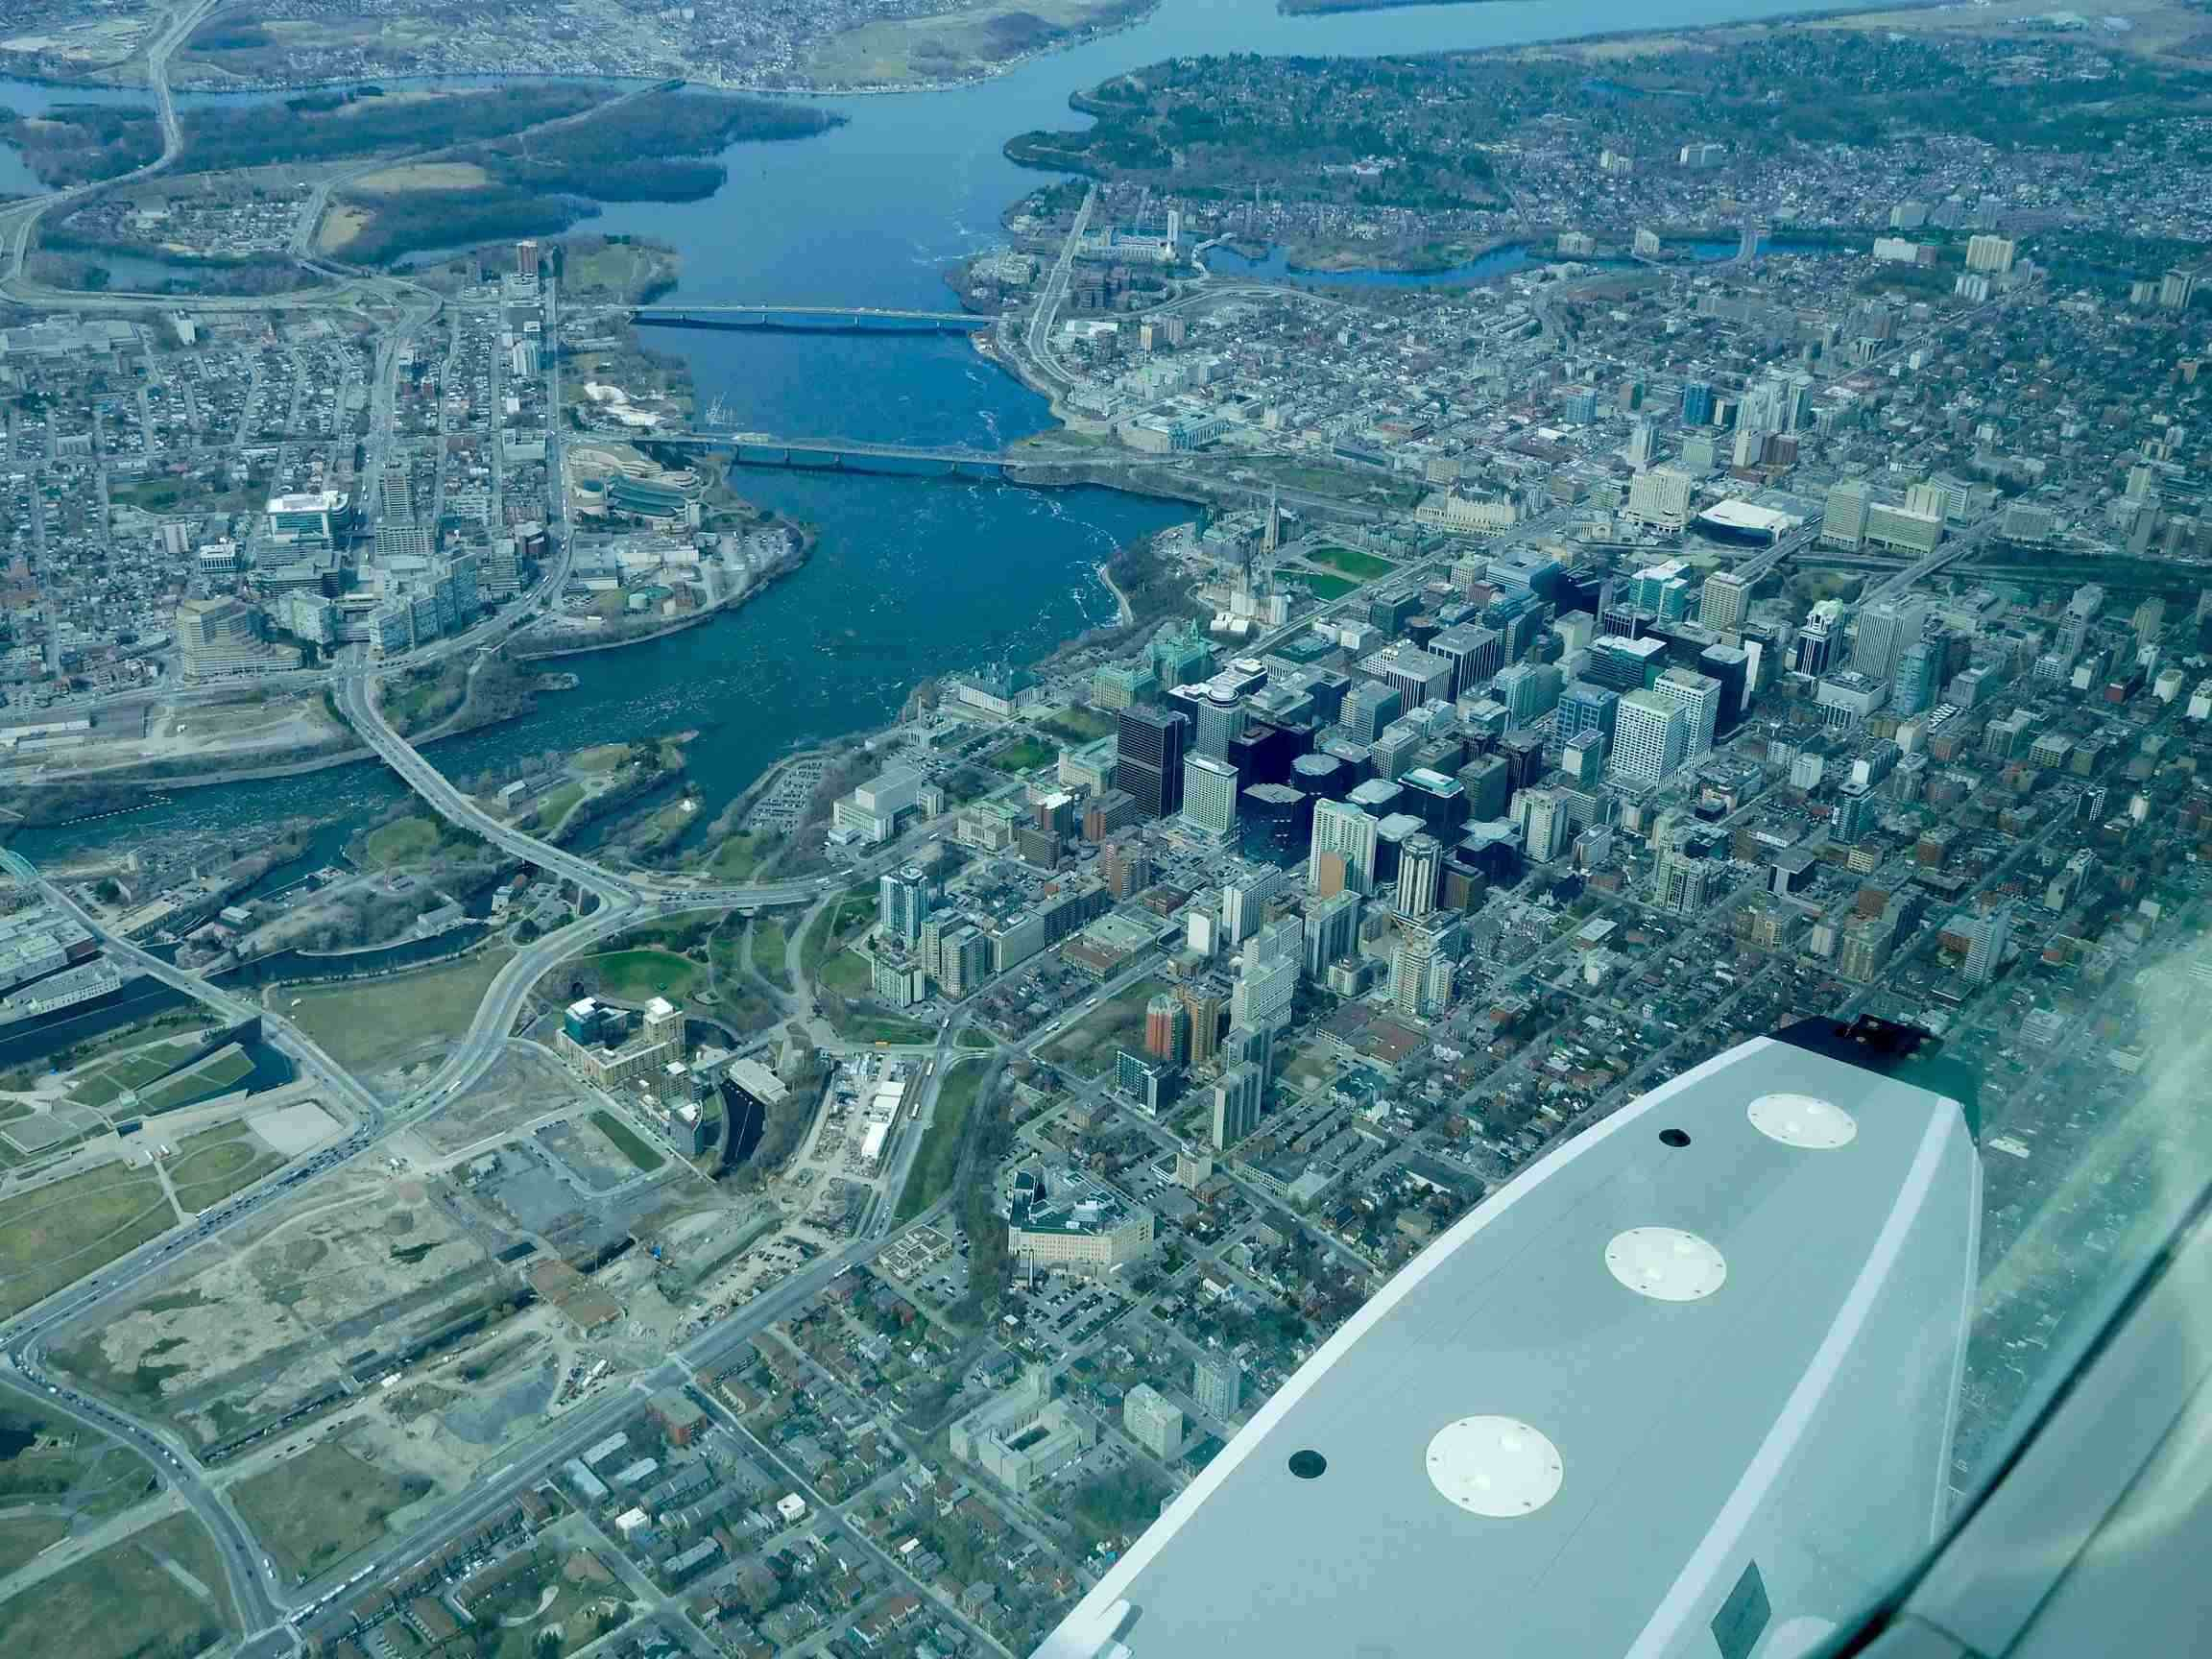 Approaching Ottawa Airport over the city and the St Lawrence River